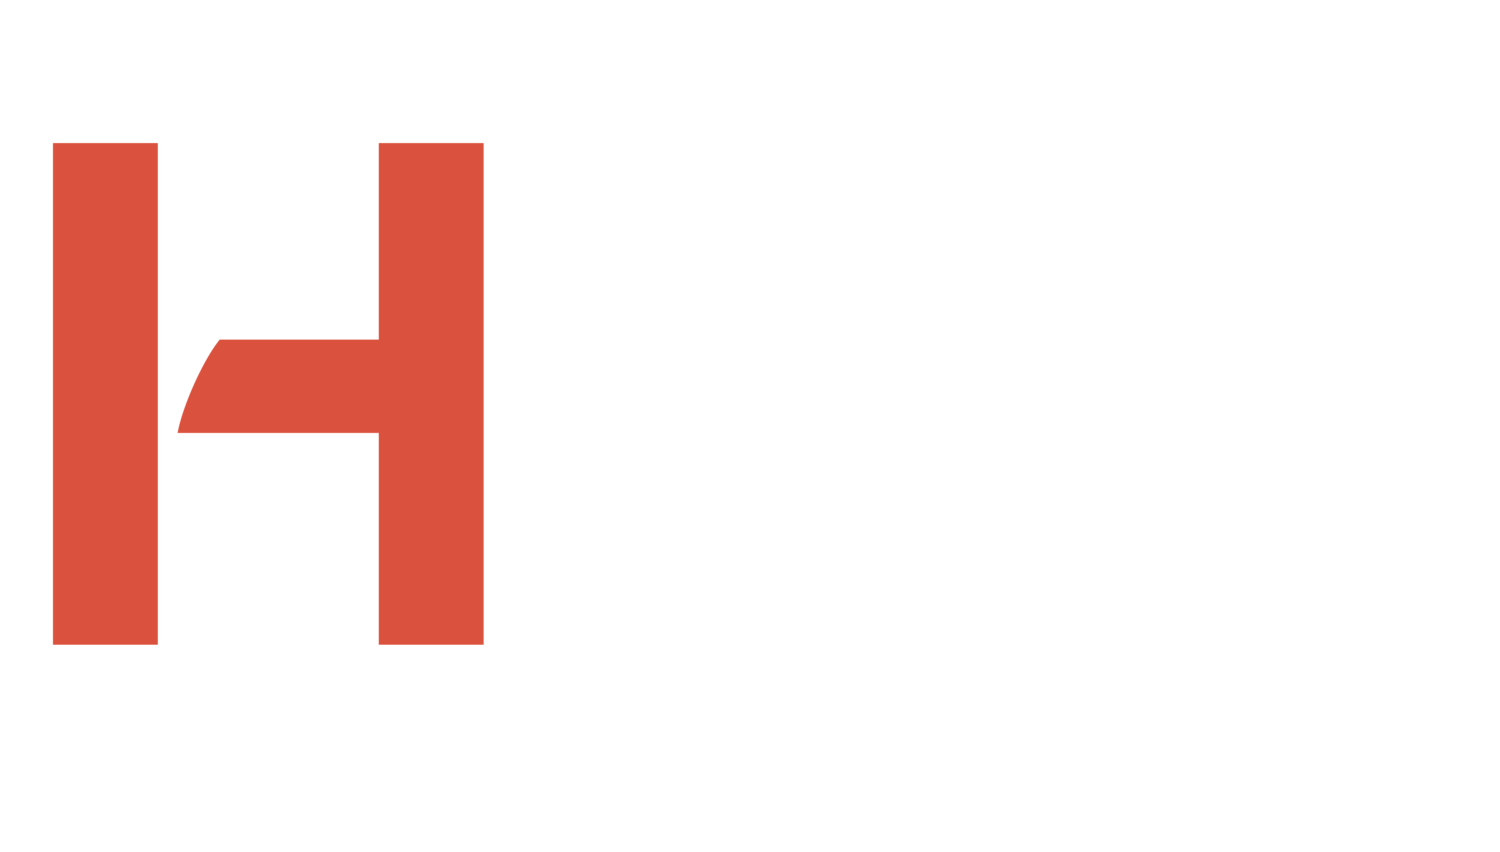 Harvard Global Education Movement